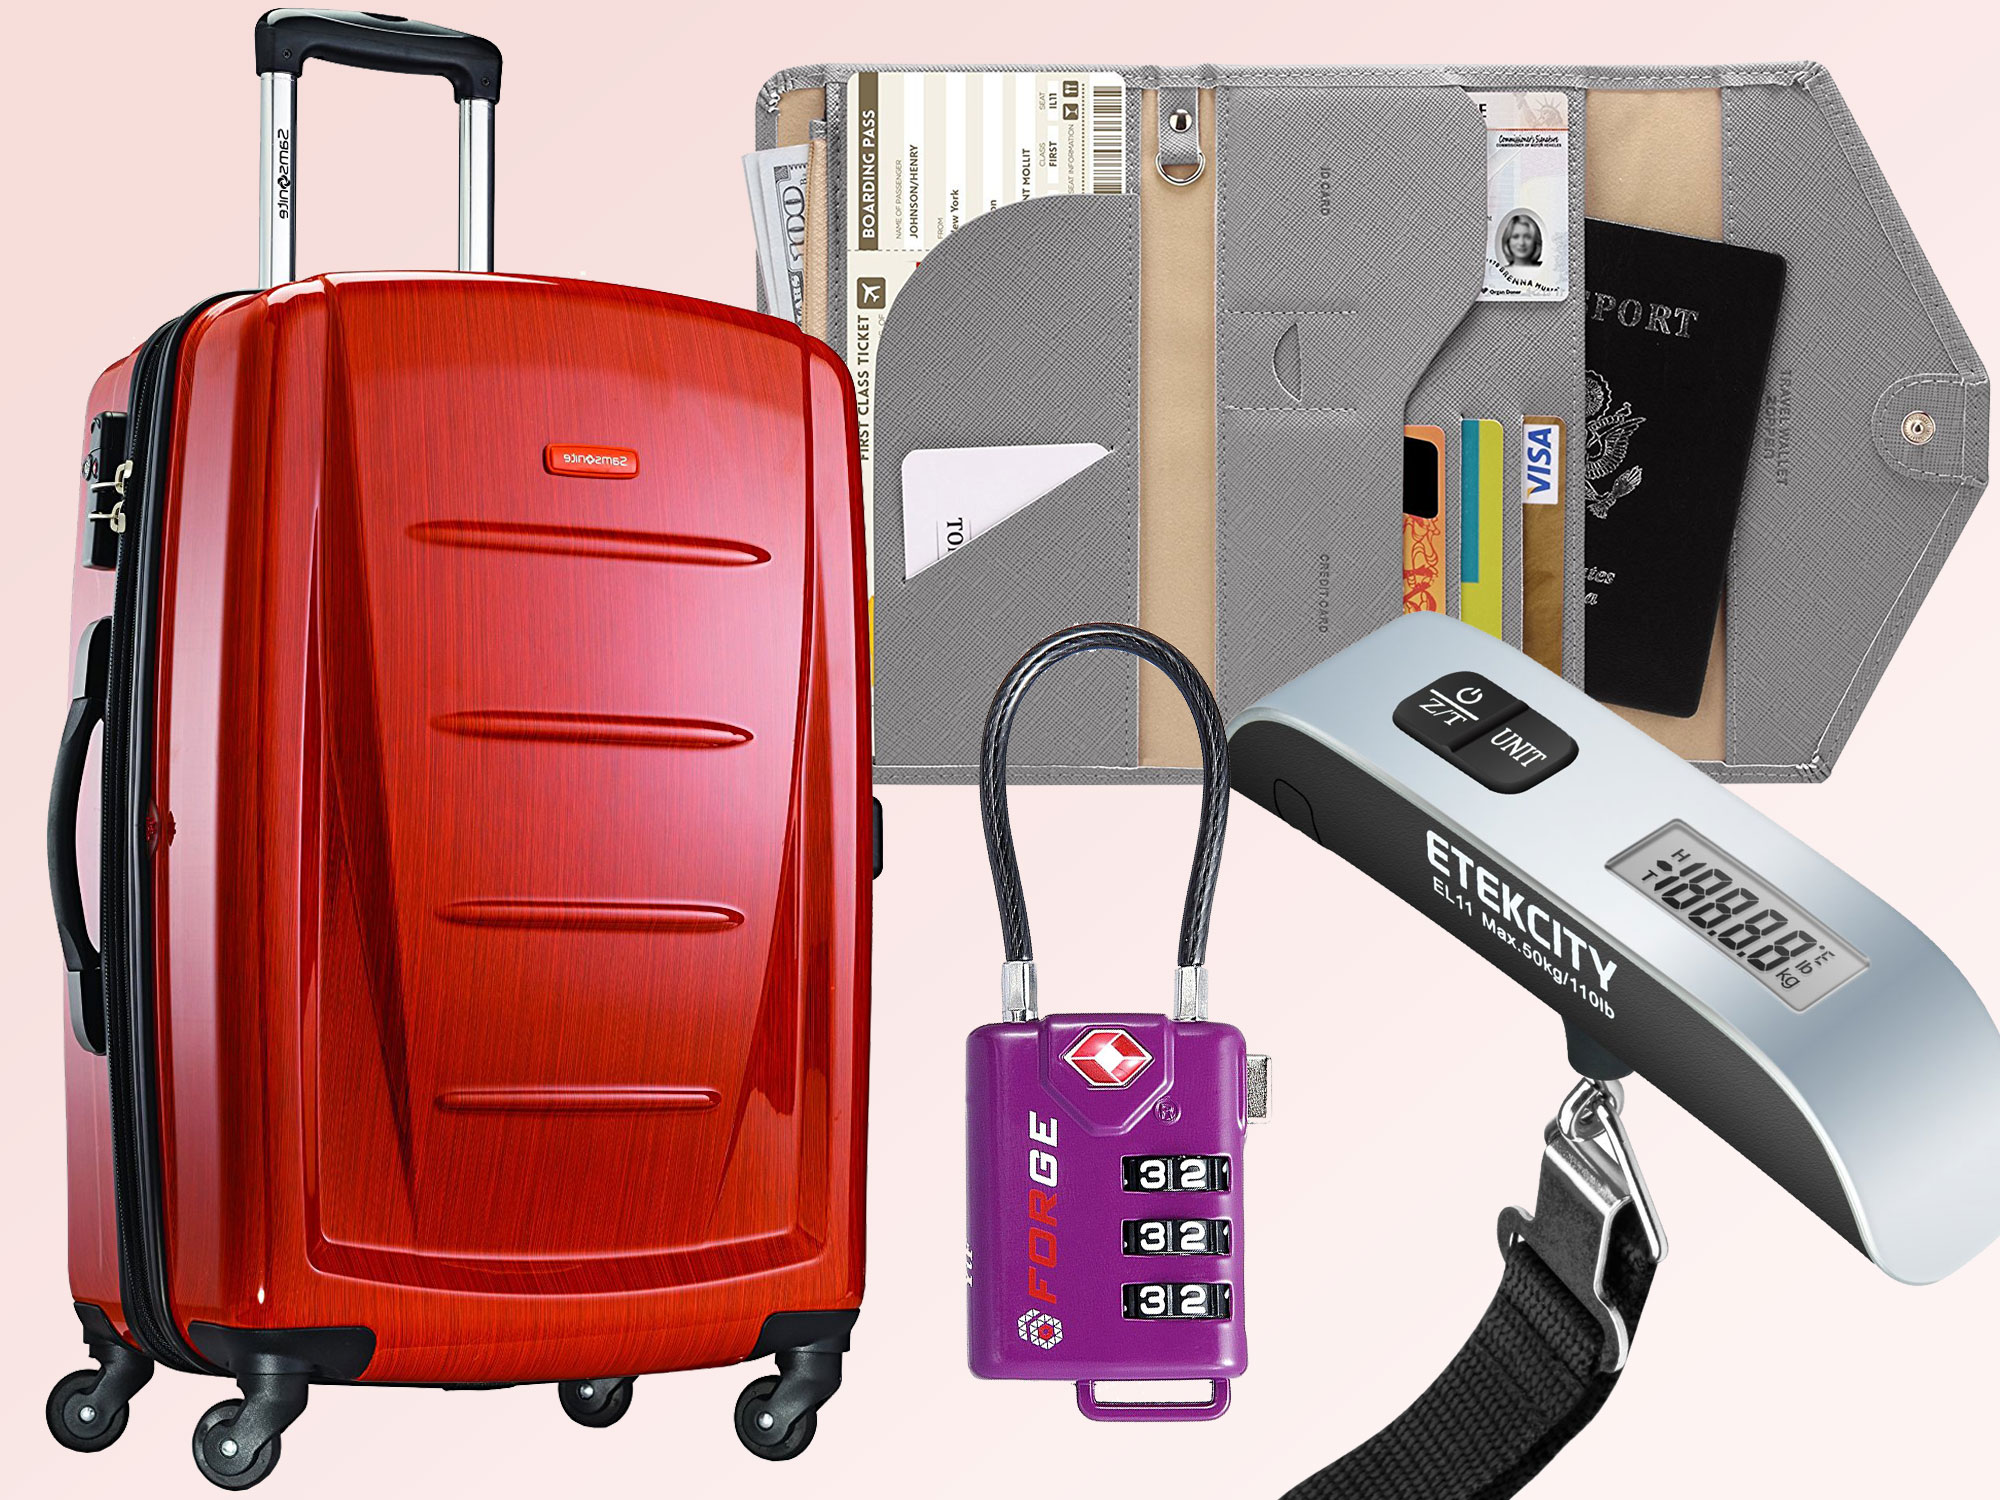 20 Best-selling Travel Products on Amazon Lead